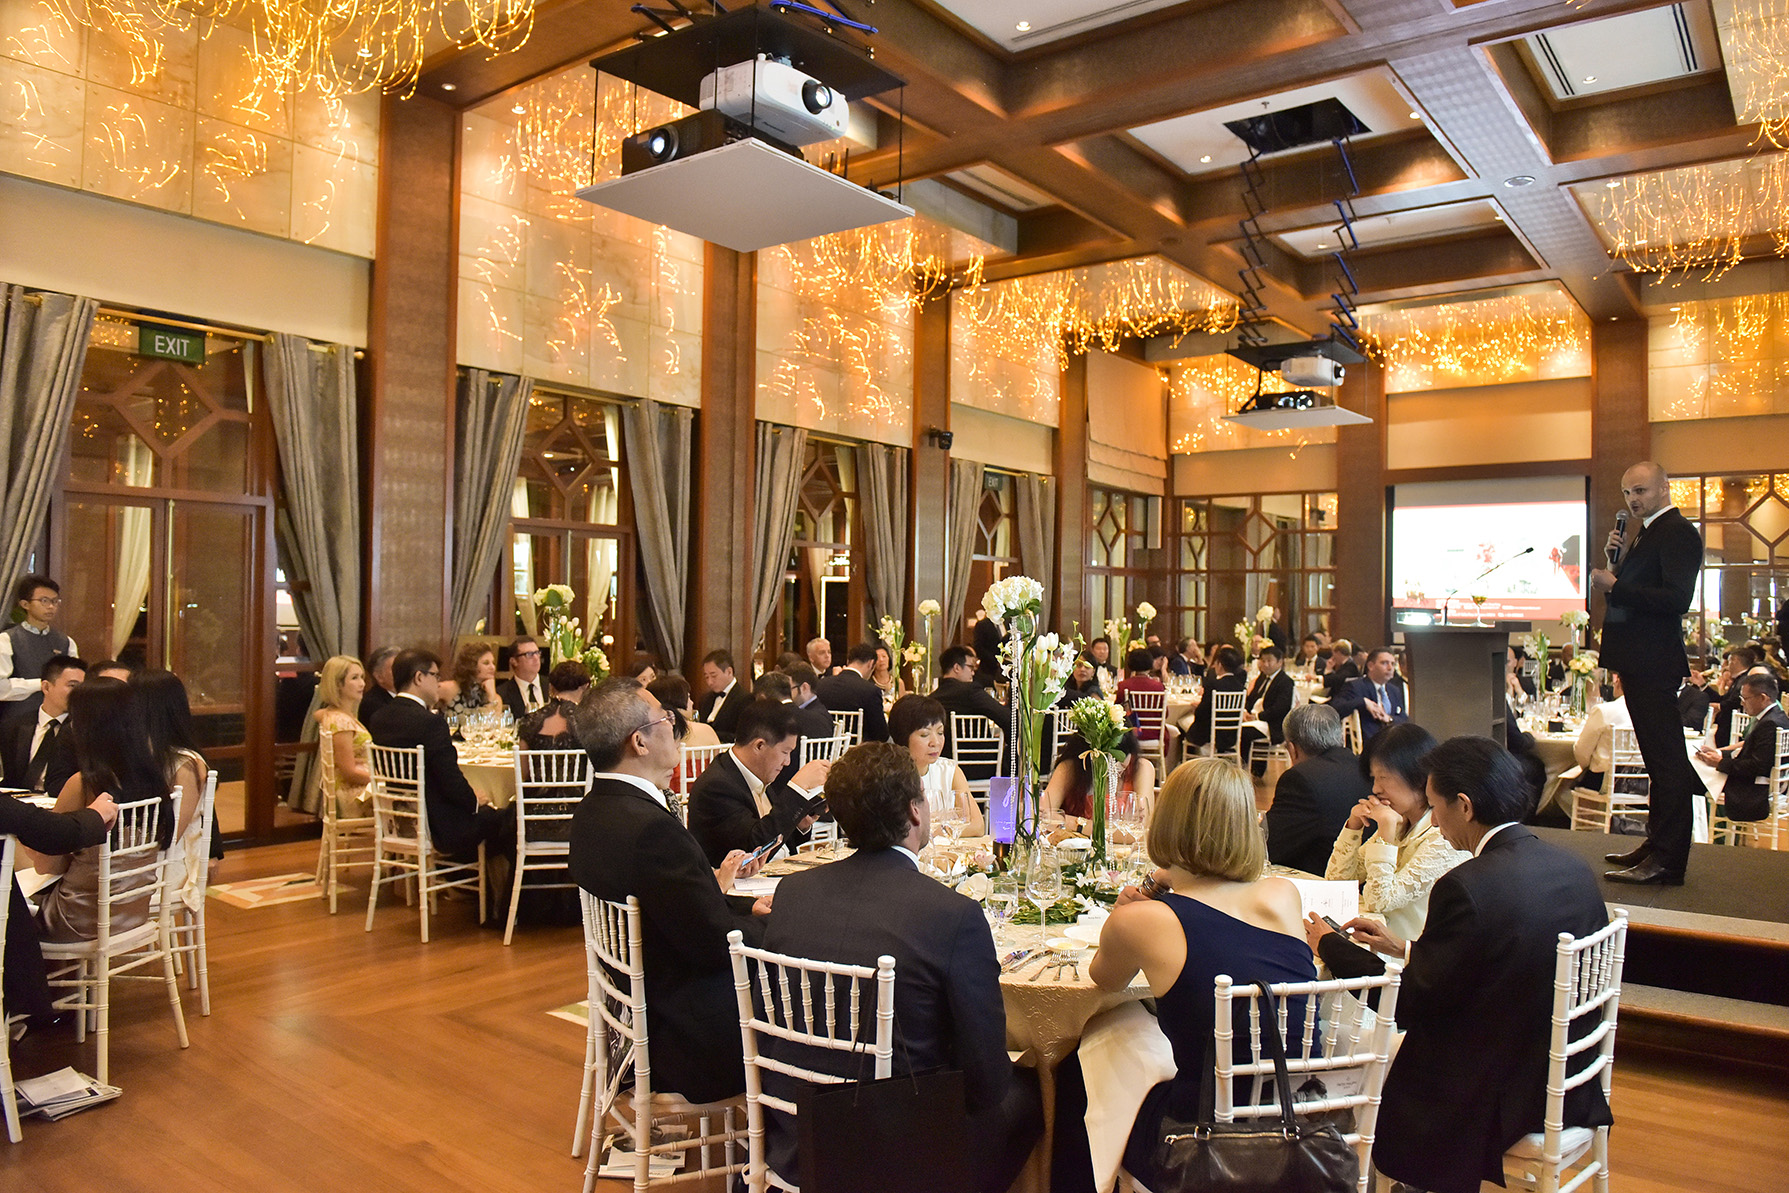 Full attendance for Singapore Fete Le Champagne